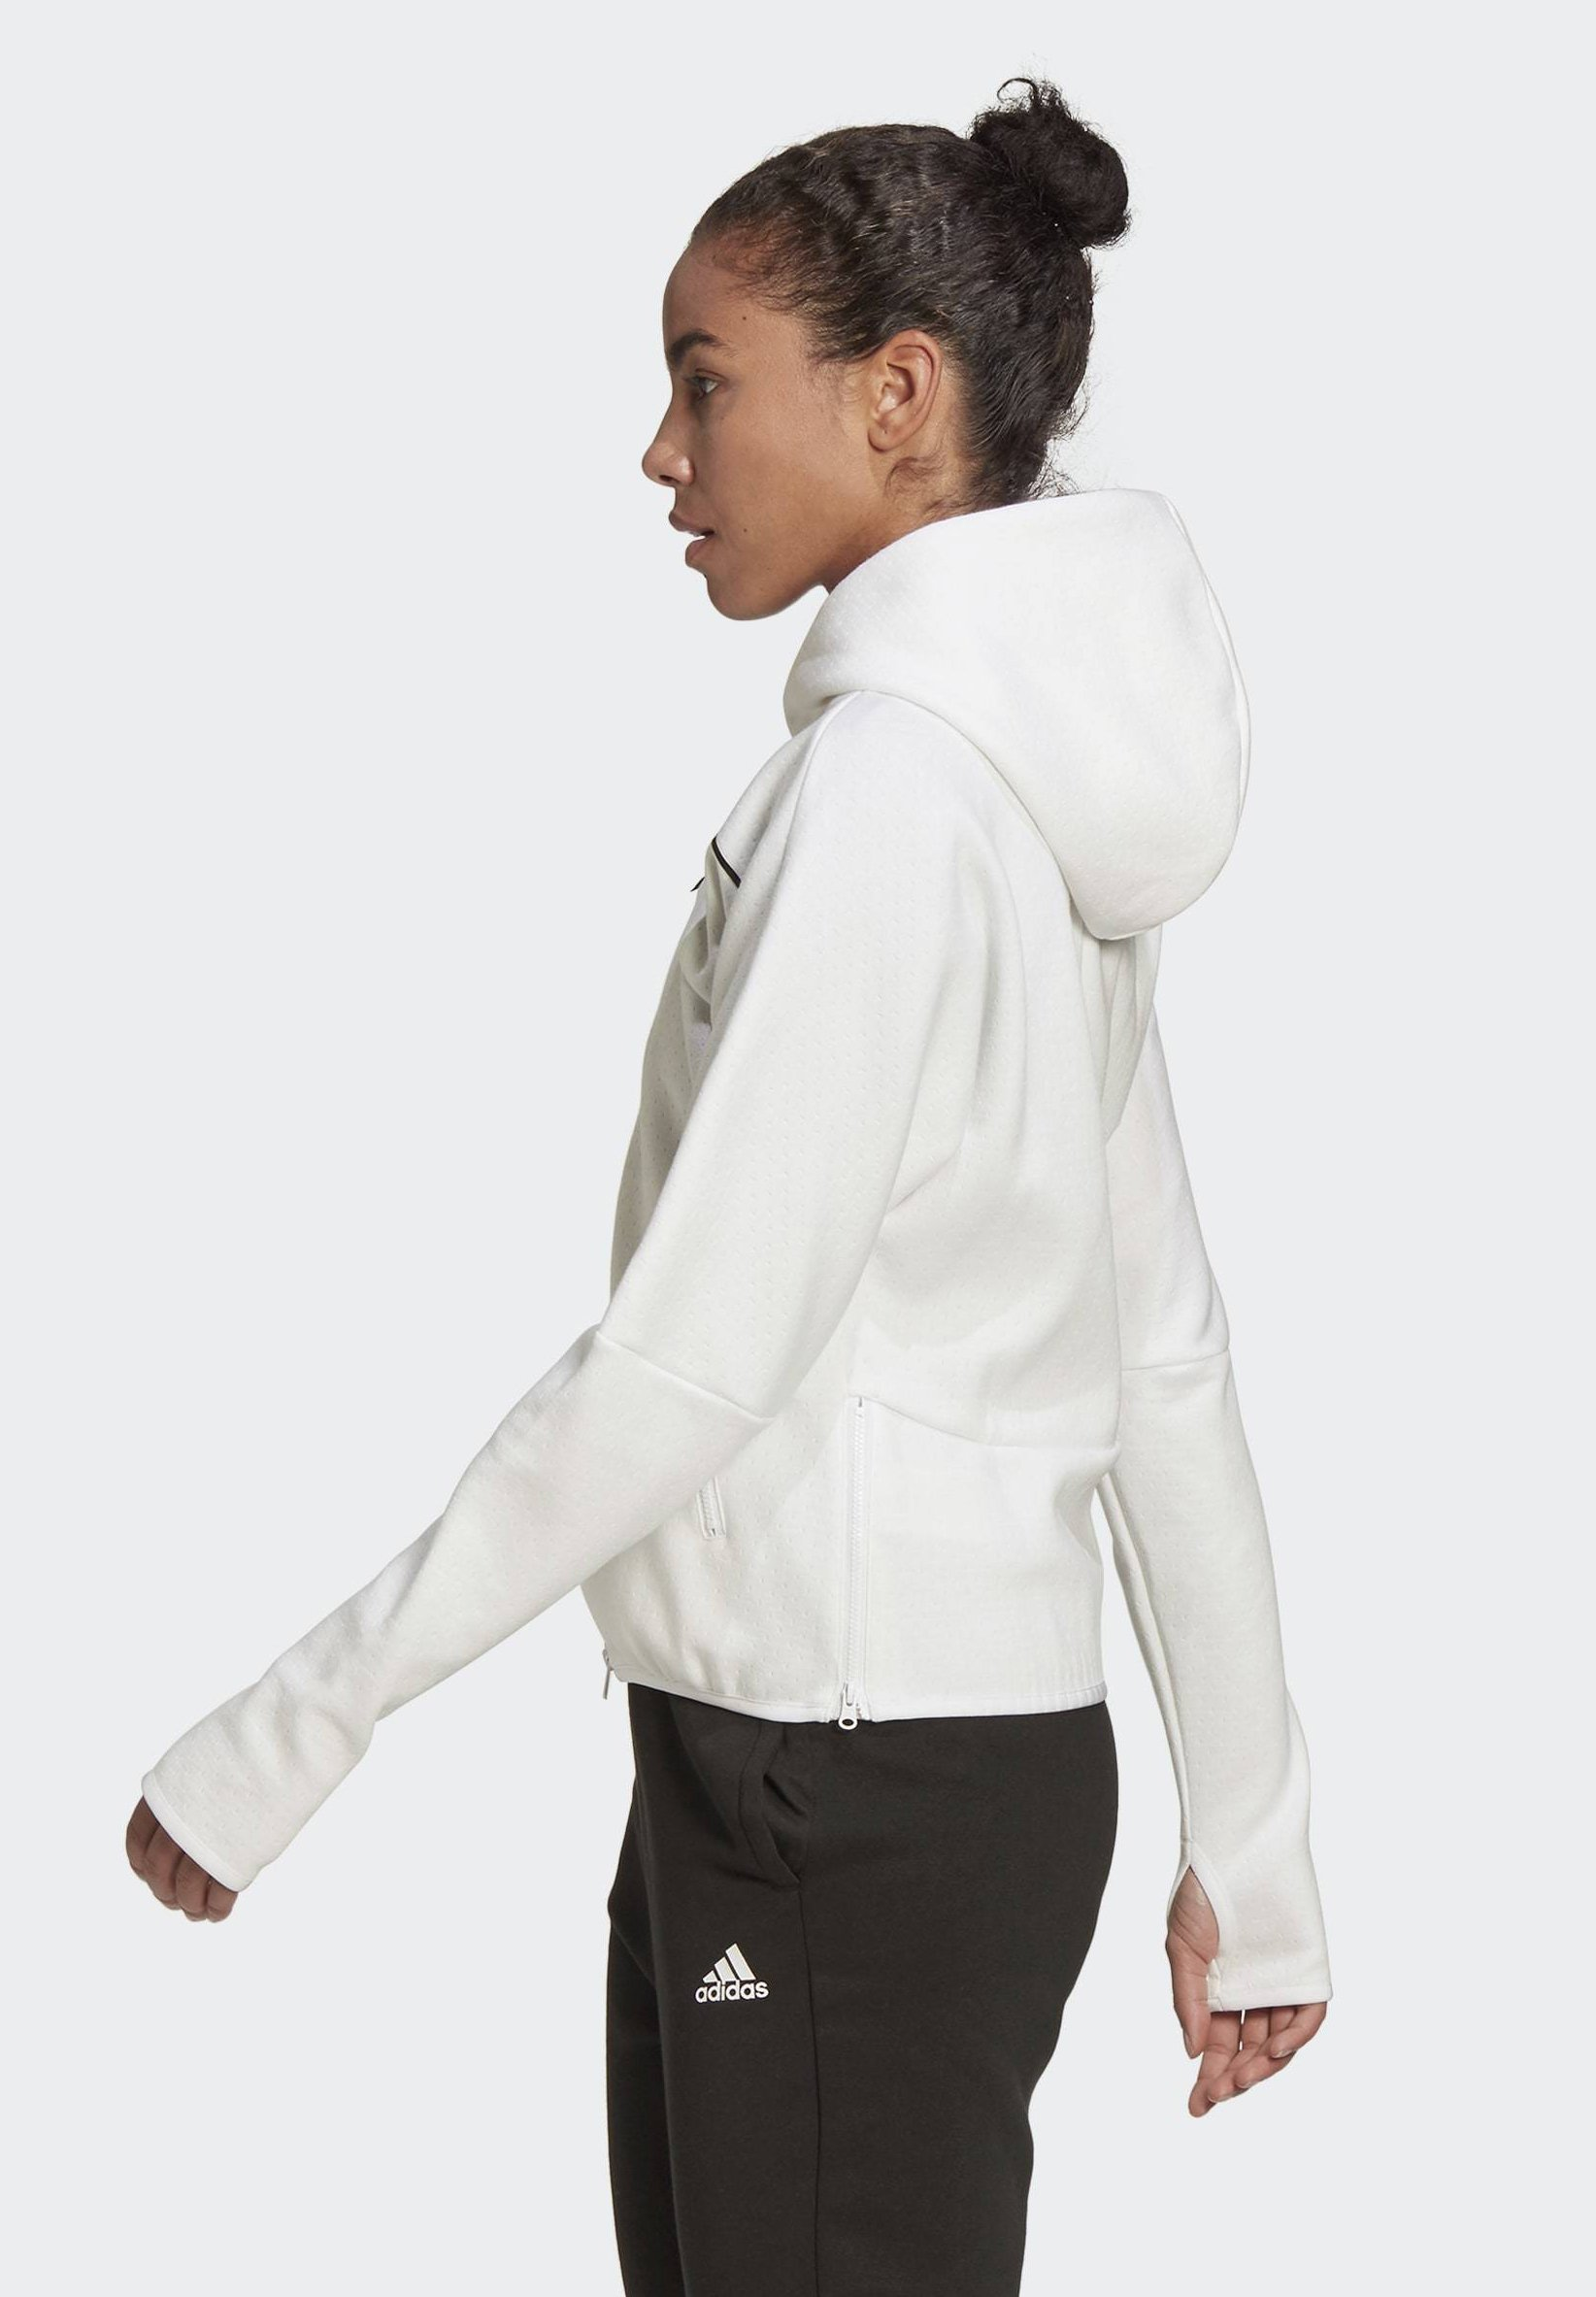 Best Selling Women's Clothing adidas Performance ADIDAS Z.N.E. HOODIE Zip-up hoodie white Czw7qIMDr